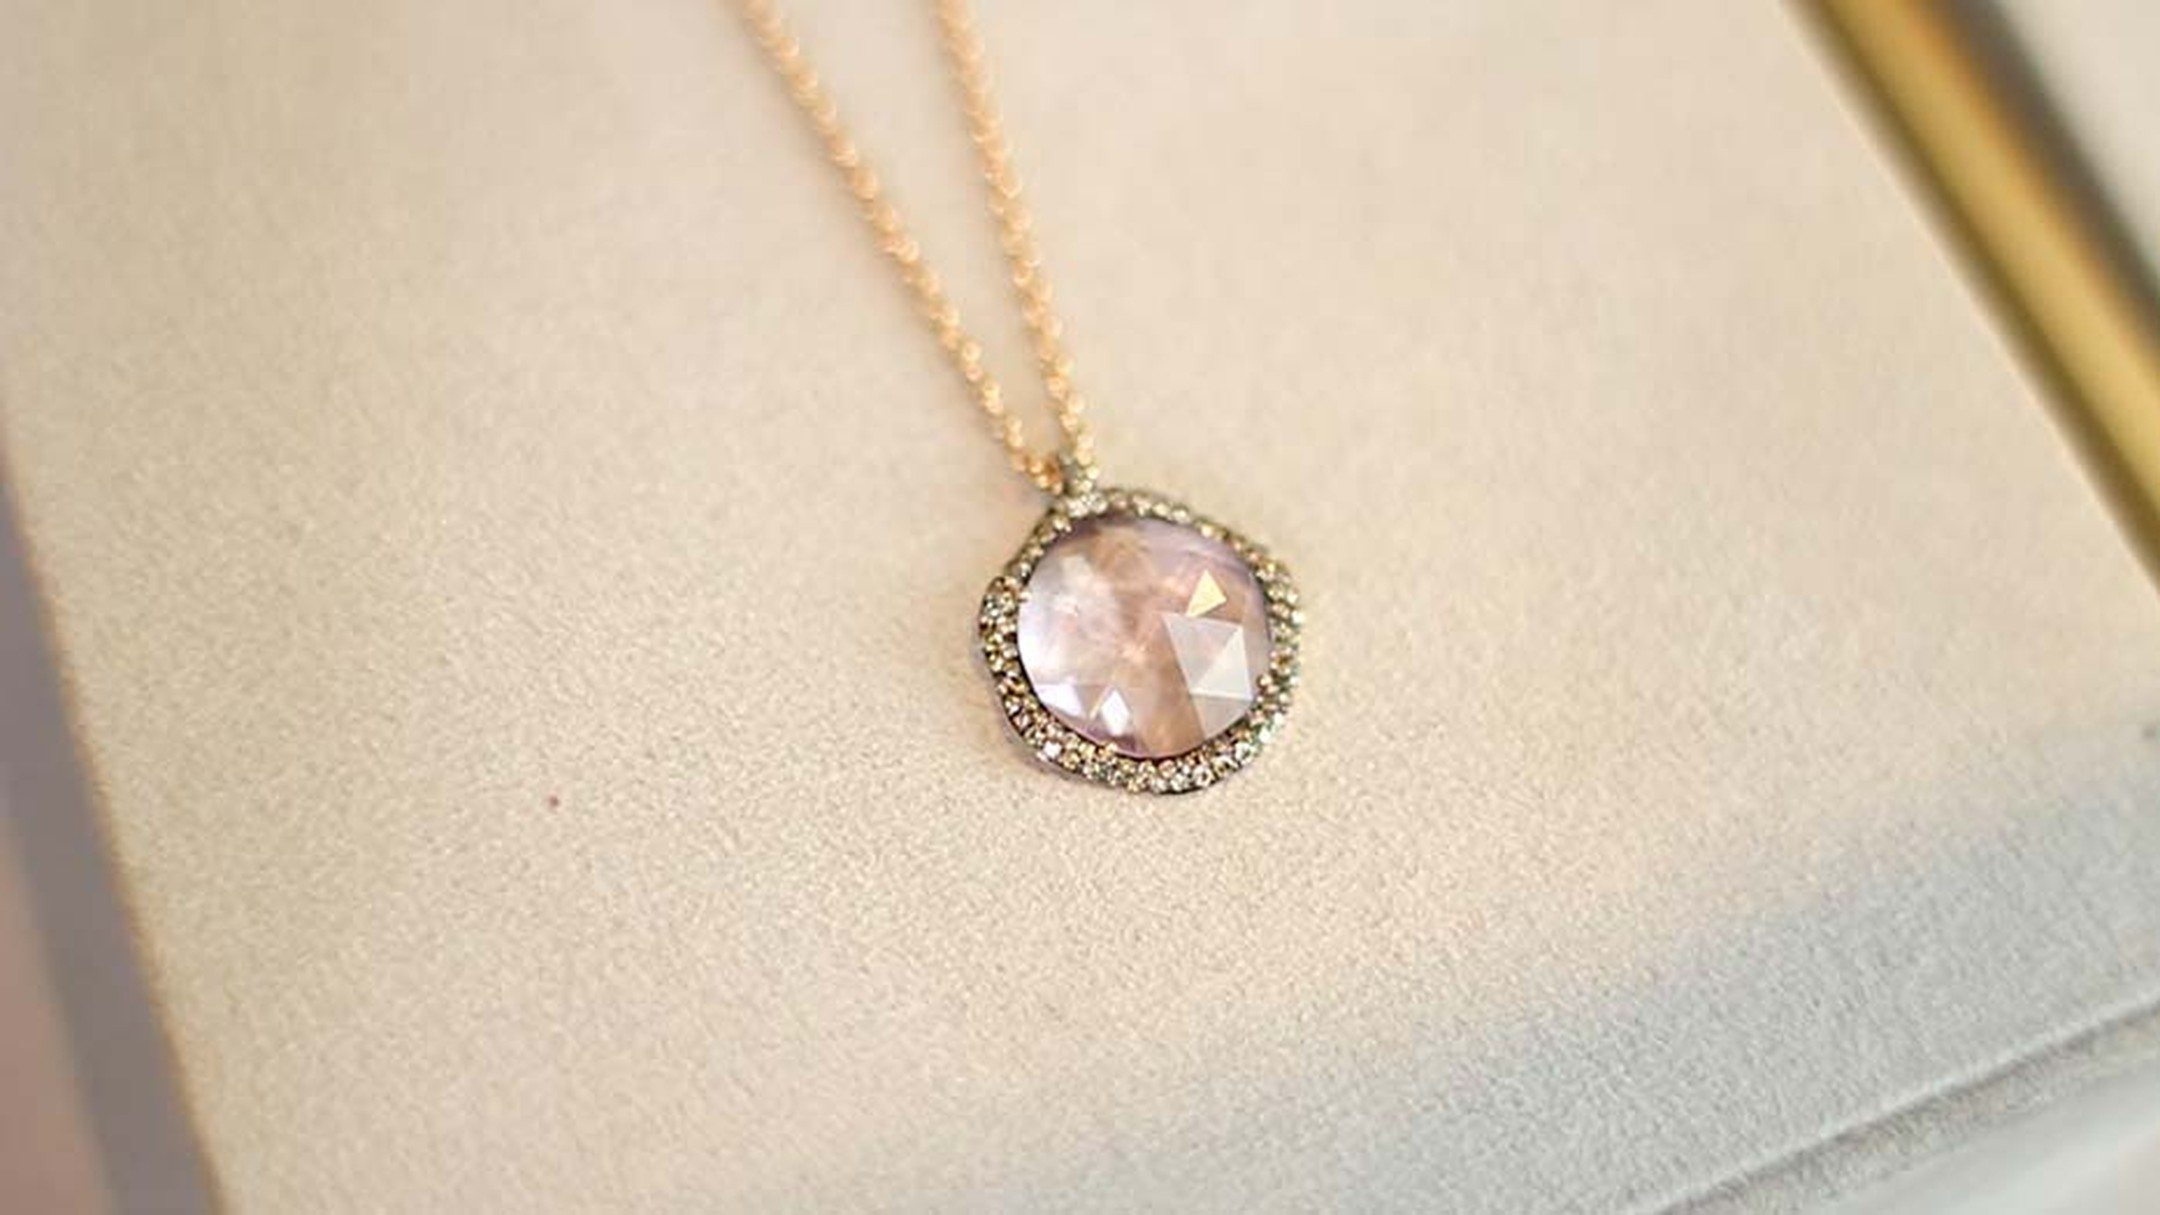 Astley Clarke Fao collection necklace with a morganite encircled by pavé diamonds.